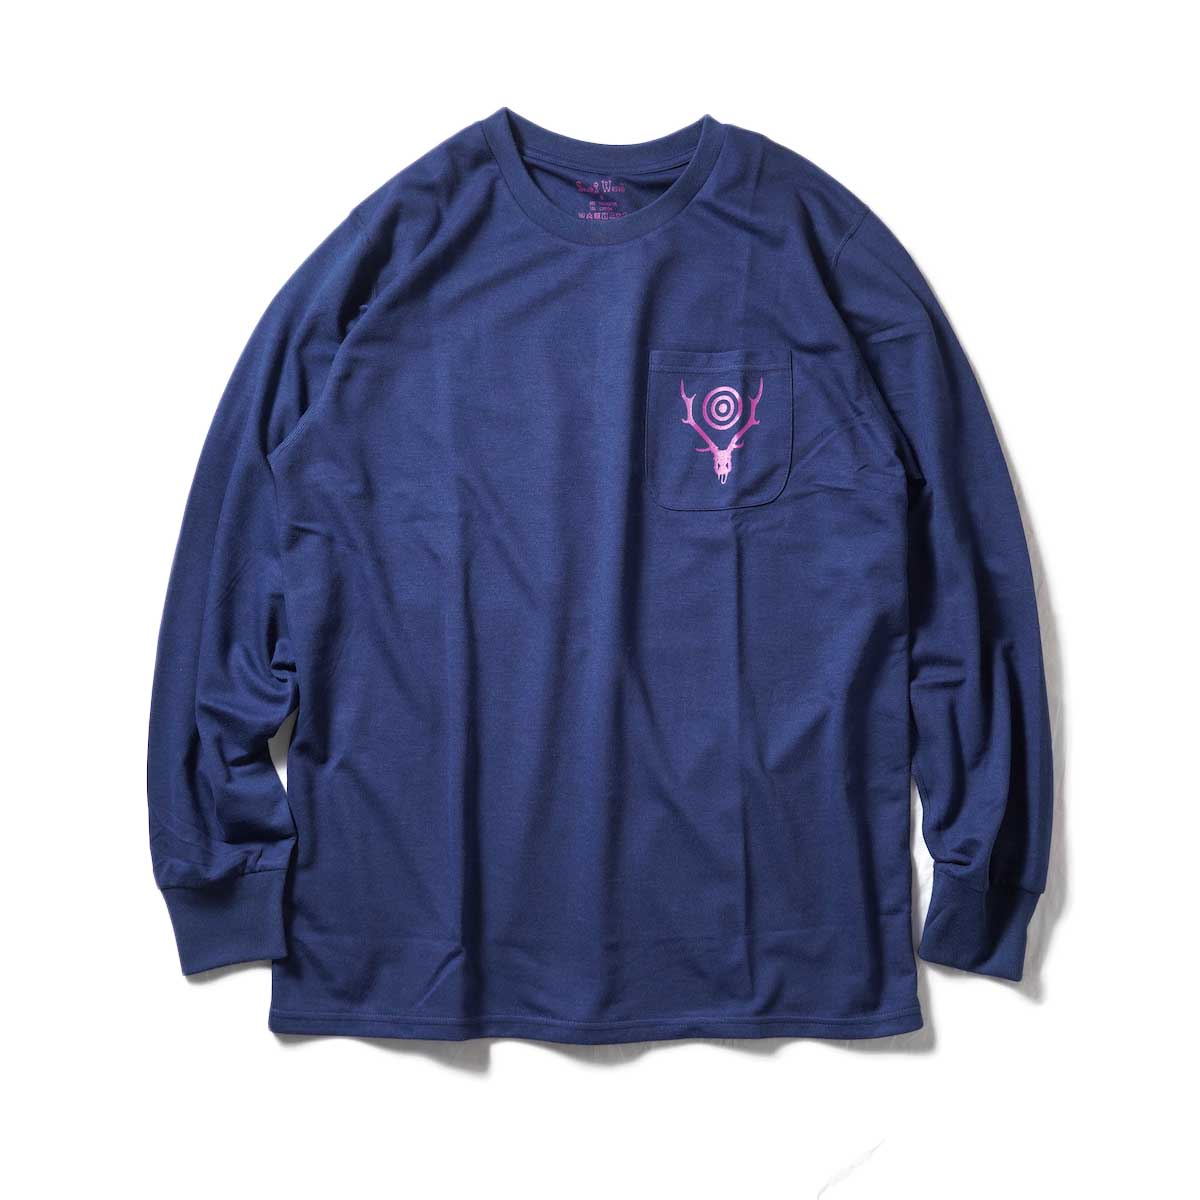 South2 West8 / L/S Round Pocket Tee -Circle Horn (Navy)